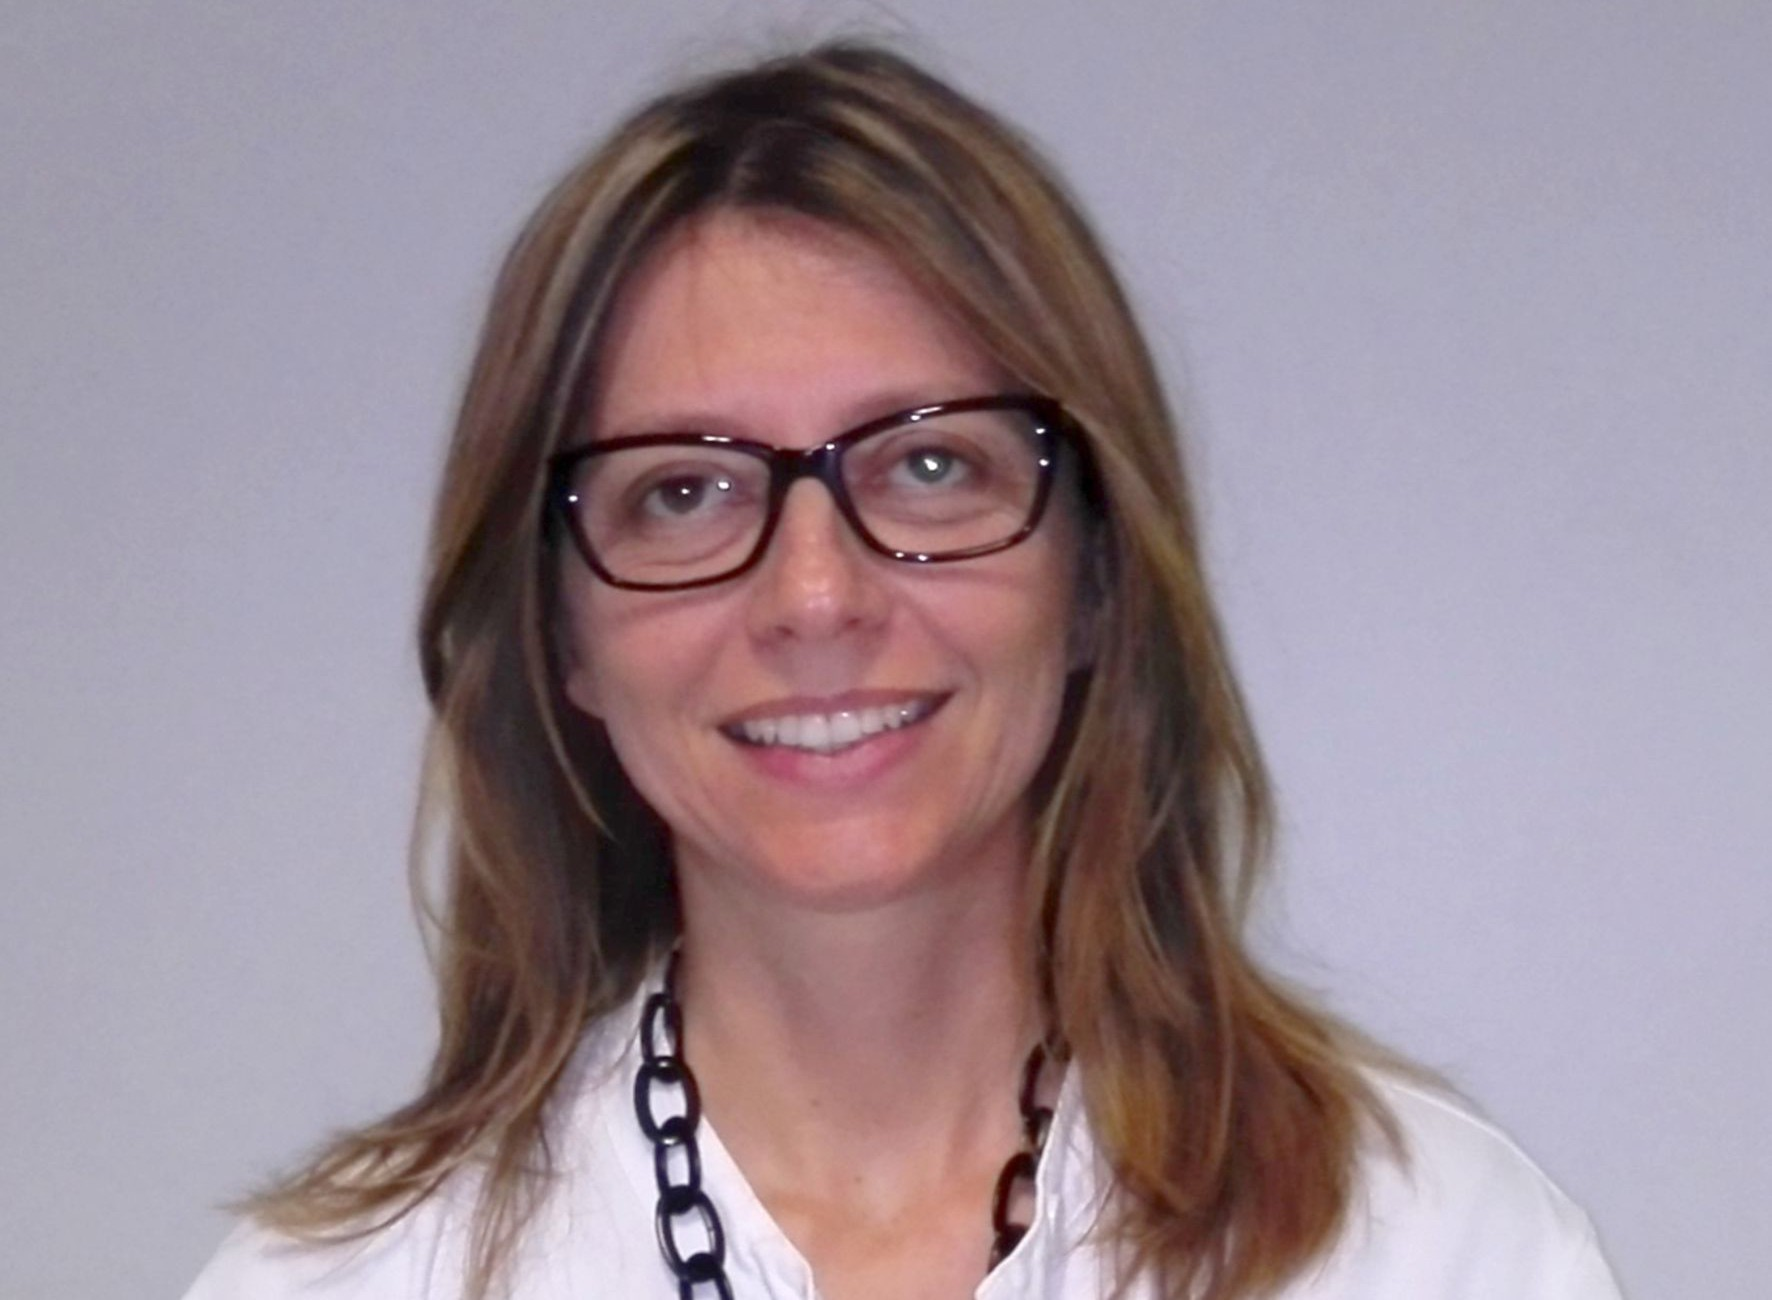 Alessandra Marengoni, researcher at the Department of Clinical and Experimental Sciences of the Brescia University (Italy) and member of the Geriatric Working Group (GWG) of the Italian Medicine Agency AIFA